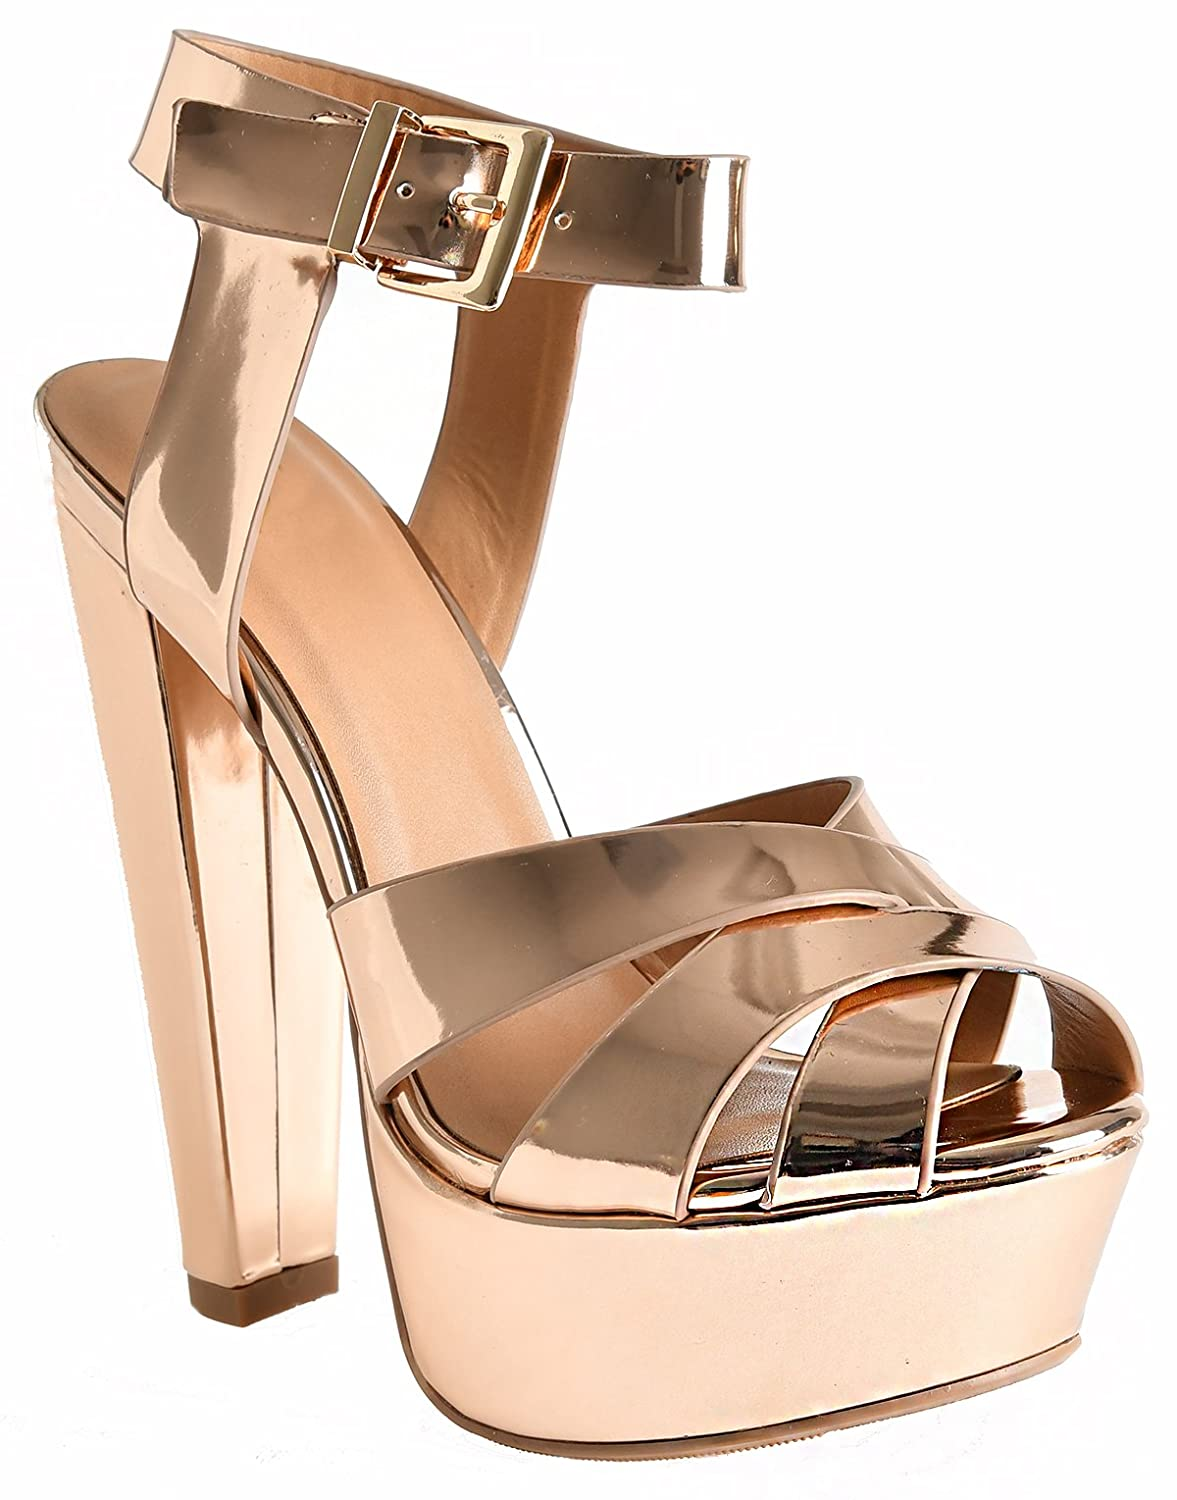 LUSTHAVE Women's Gigi Ankle Strap Cross Front Platform Ultra High Heel Dressy Casual Sandals by B071P8RHZC 10 B(M) US|Rosegold